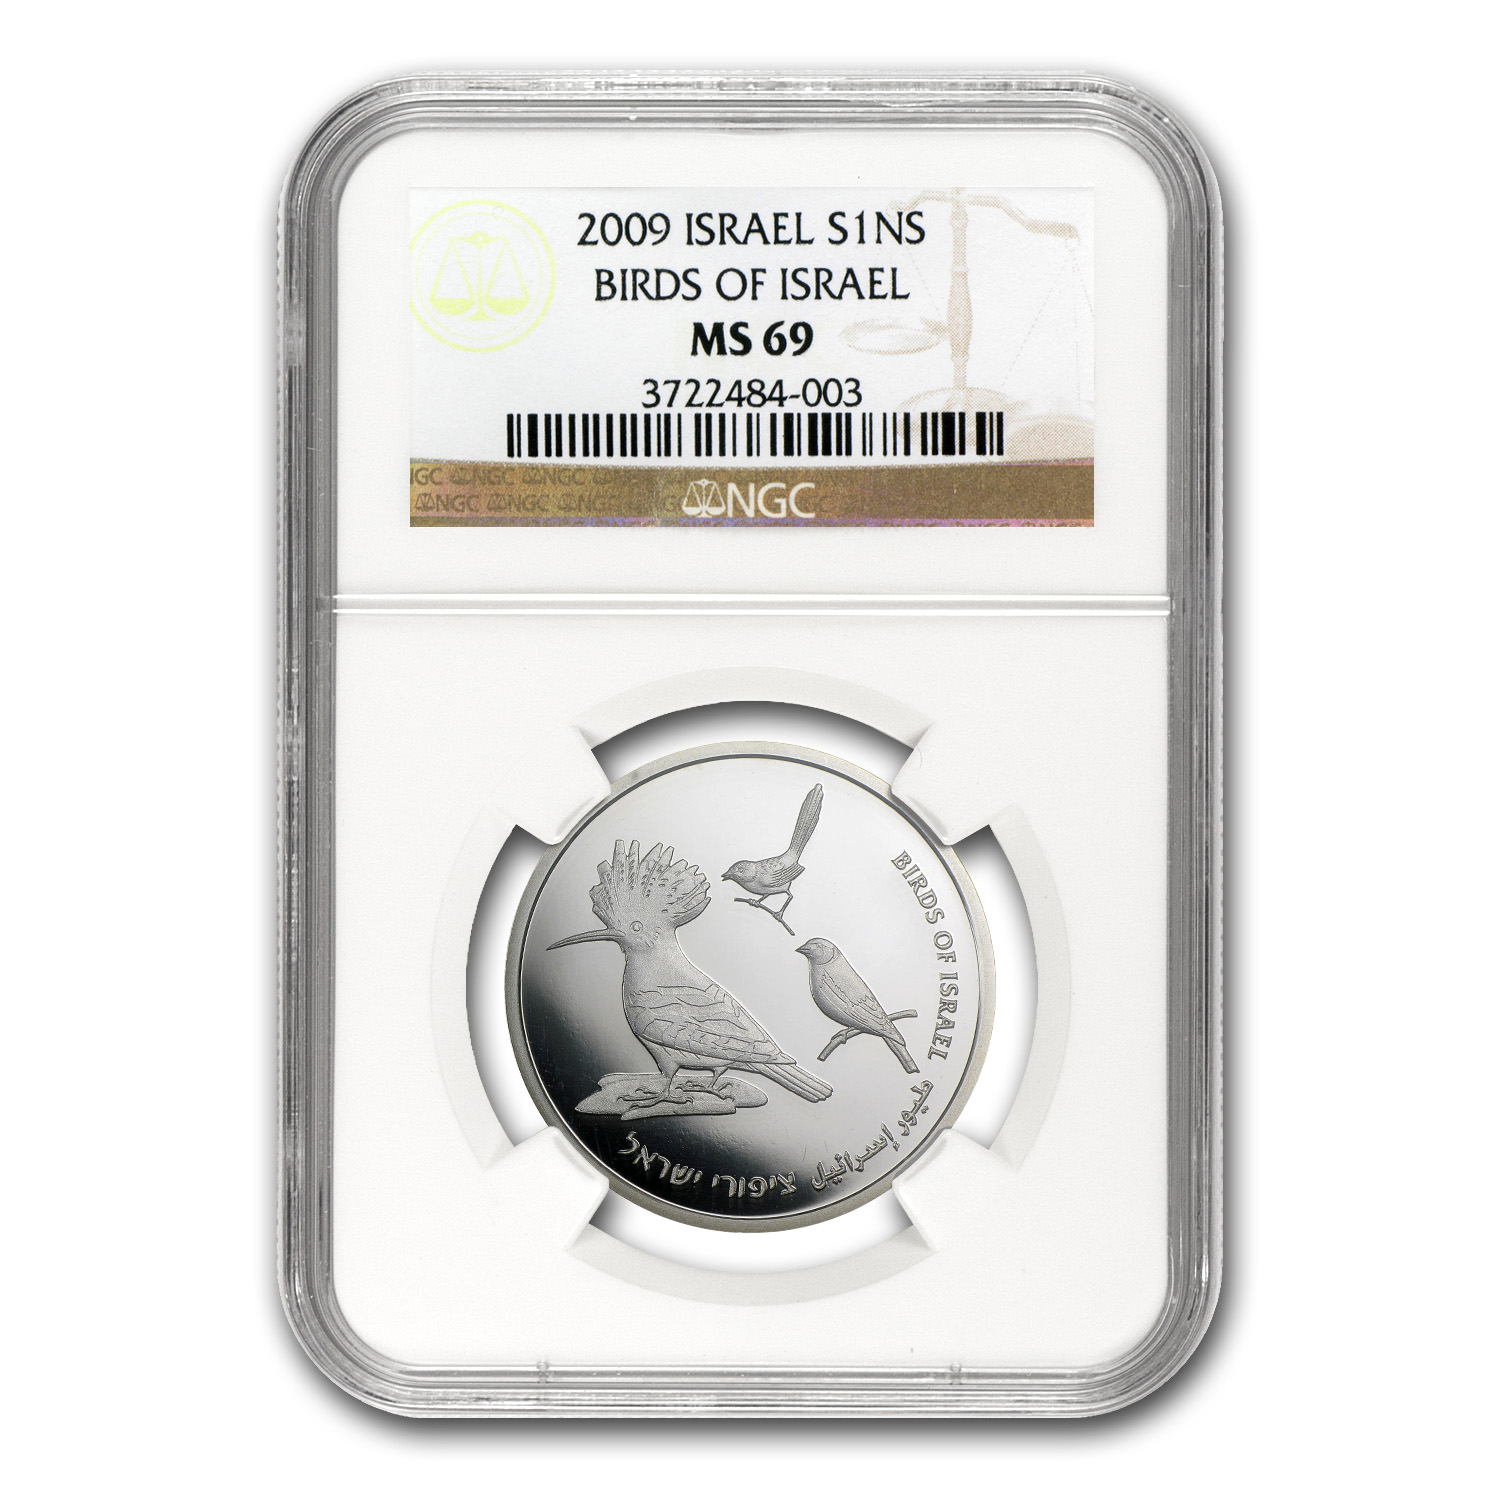 2009 Israel Silver 1 NIS Birds of Israel MS-69 NGC